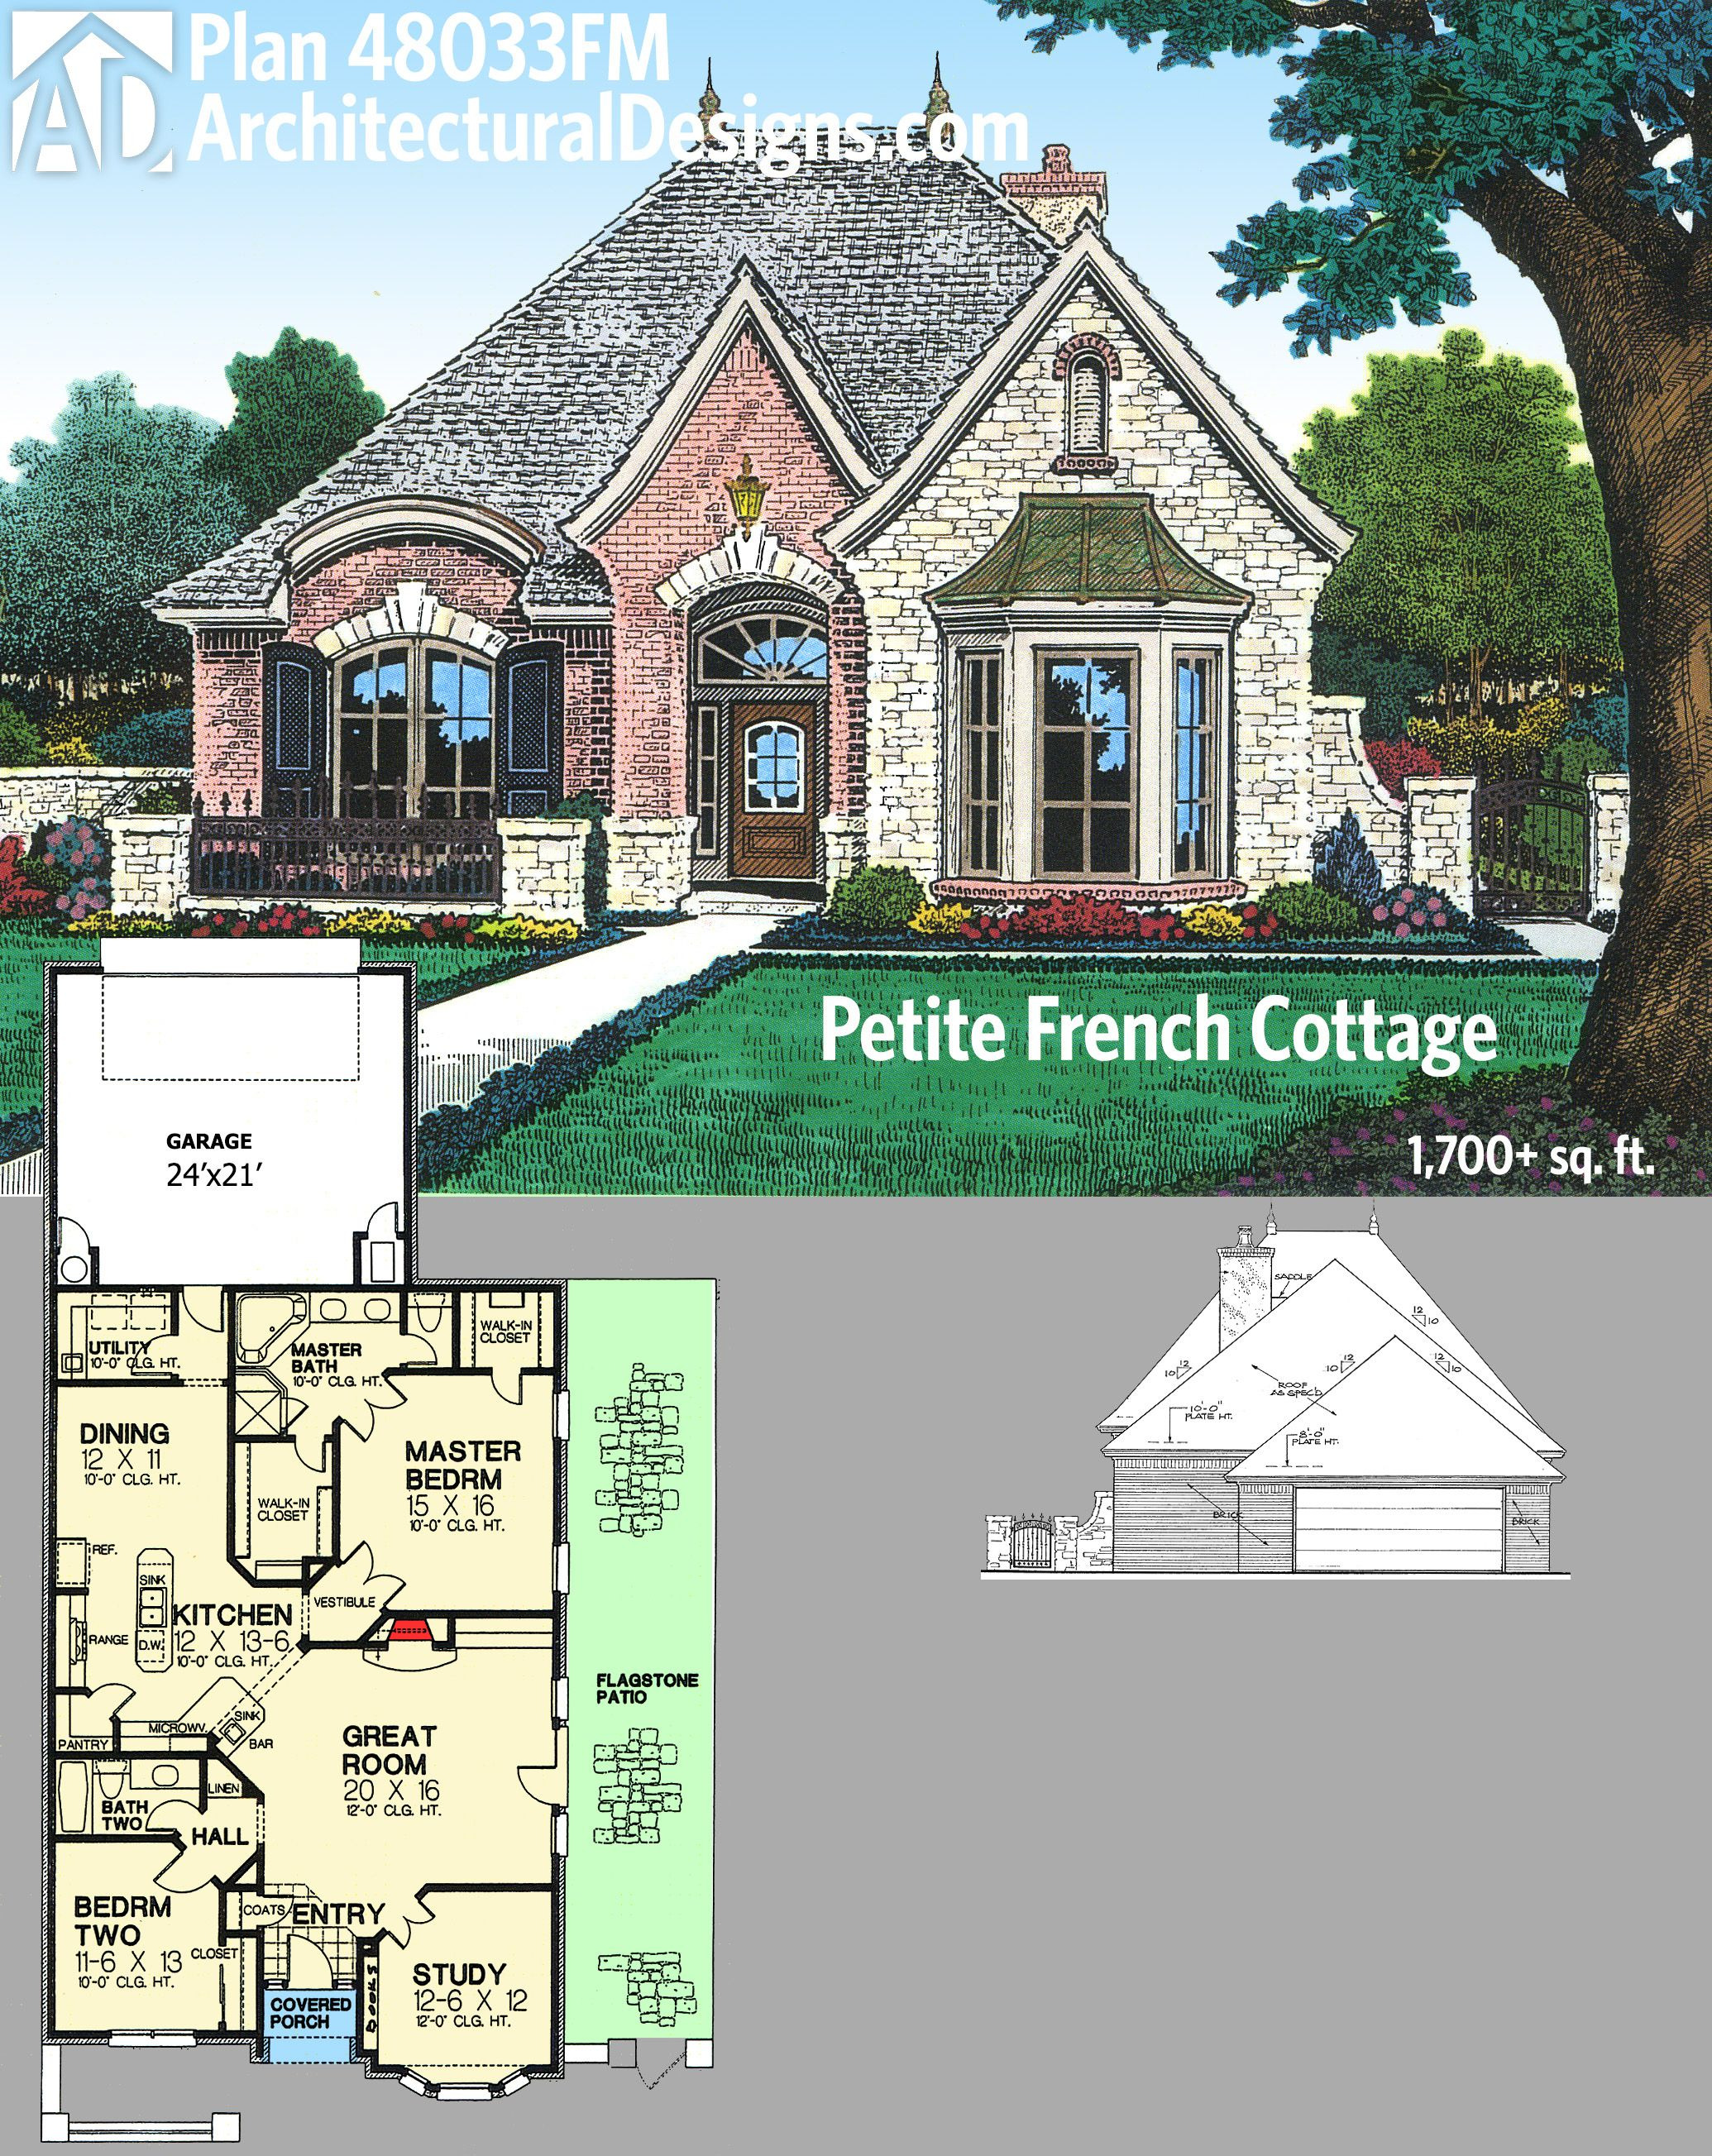 Small French Cottage House Plans Awesome Plan Fm Petite French Cottage In 2020